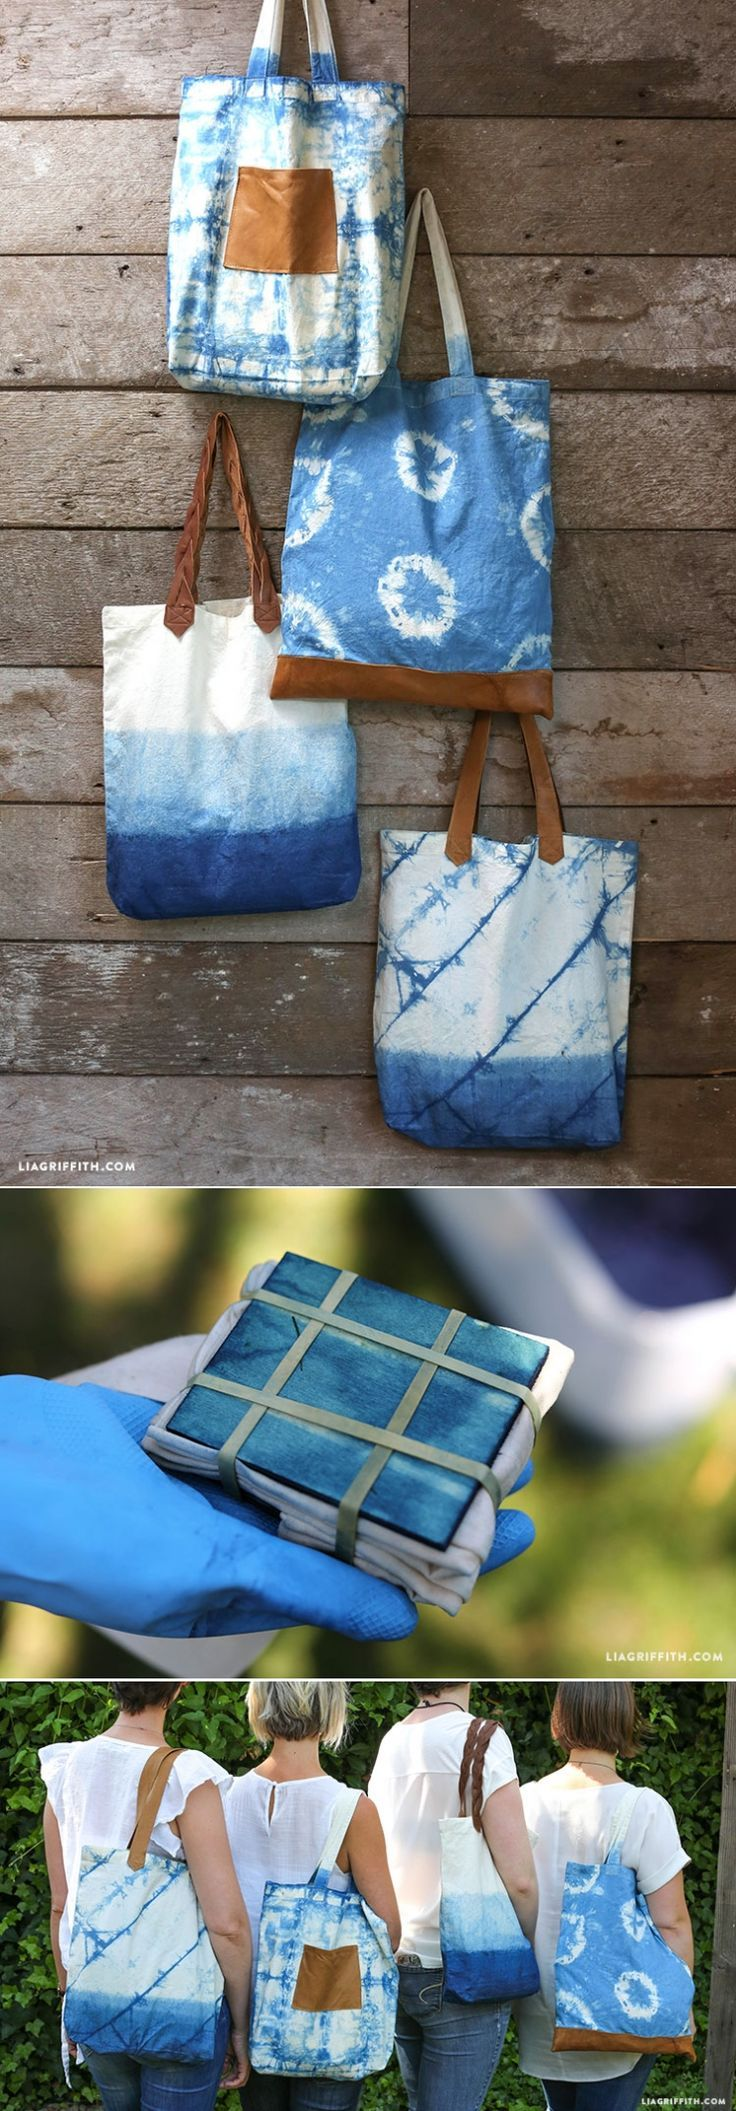 Tote bags dyed with indigo using tie dye & shibori techniques | Lia Griffith.…